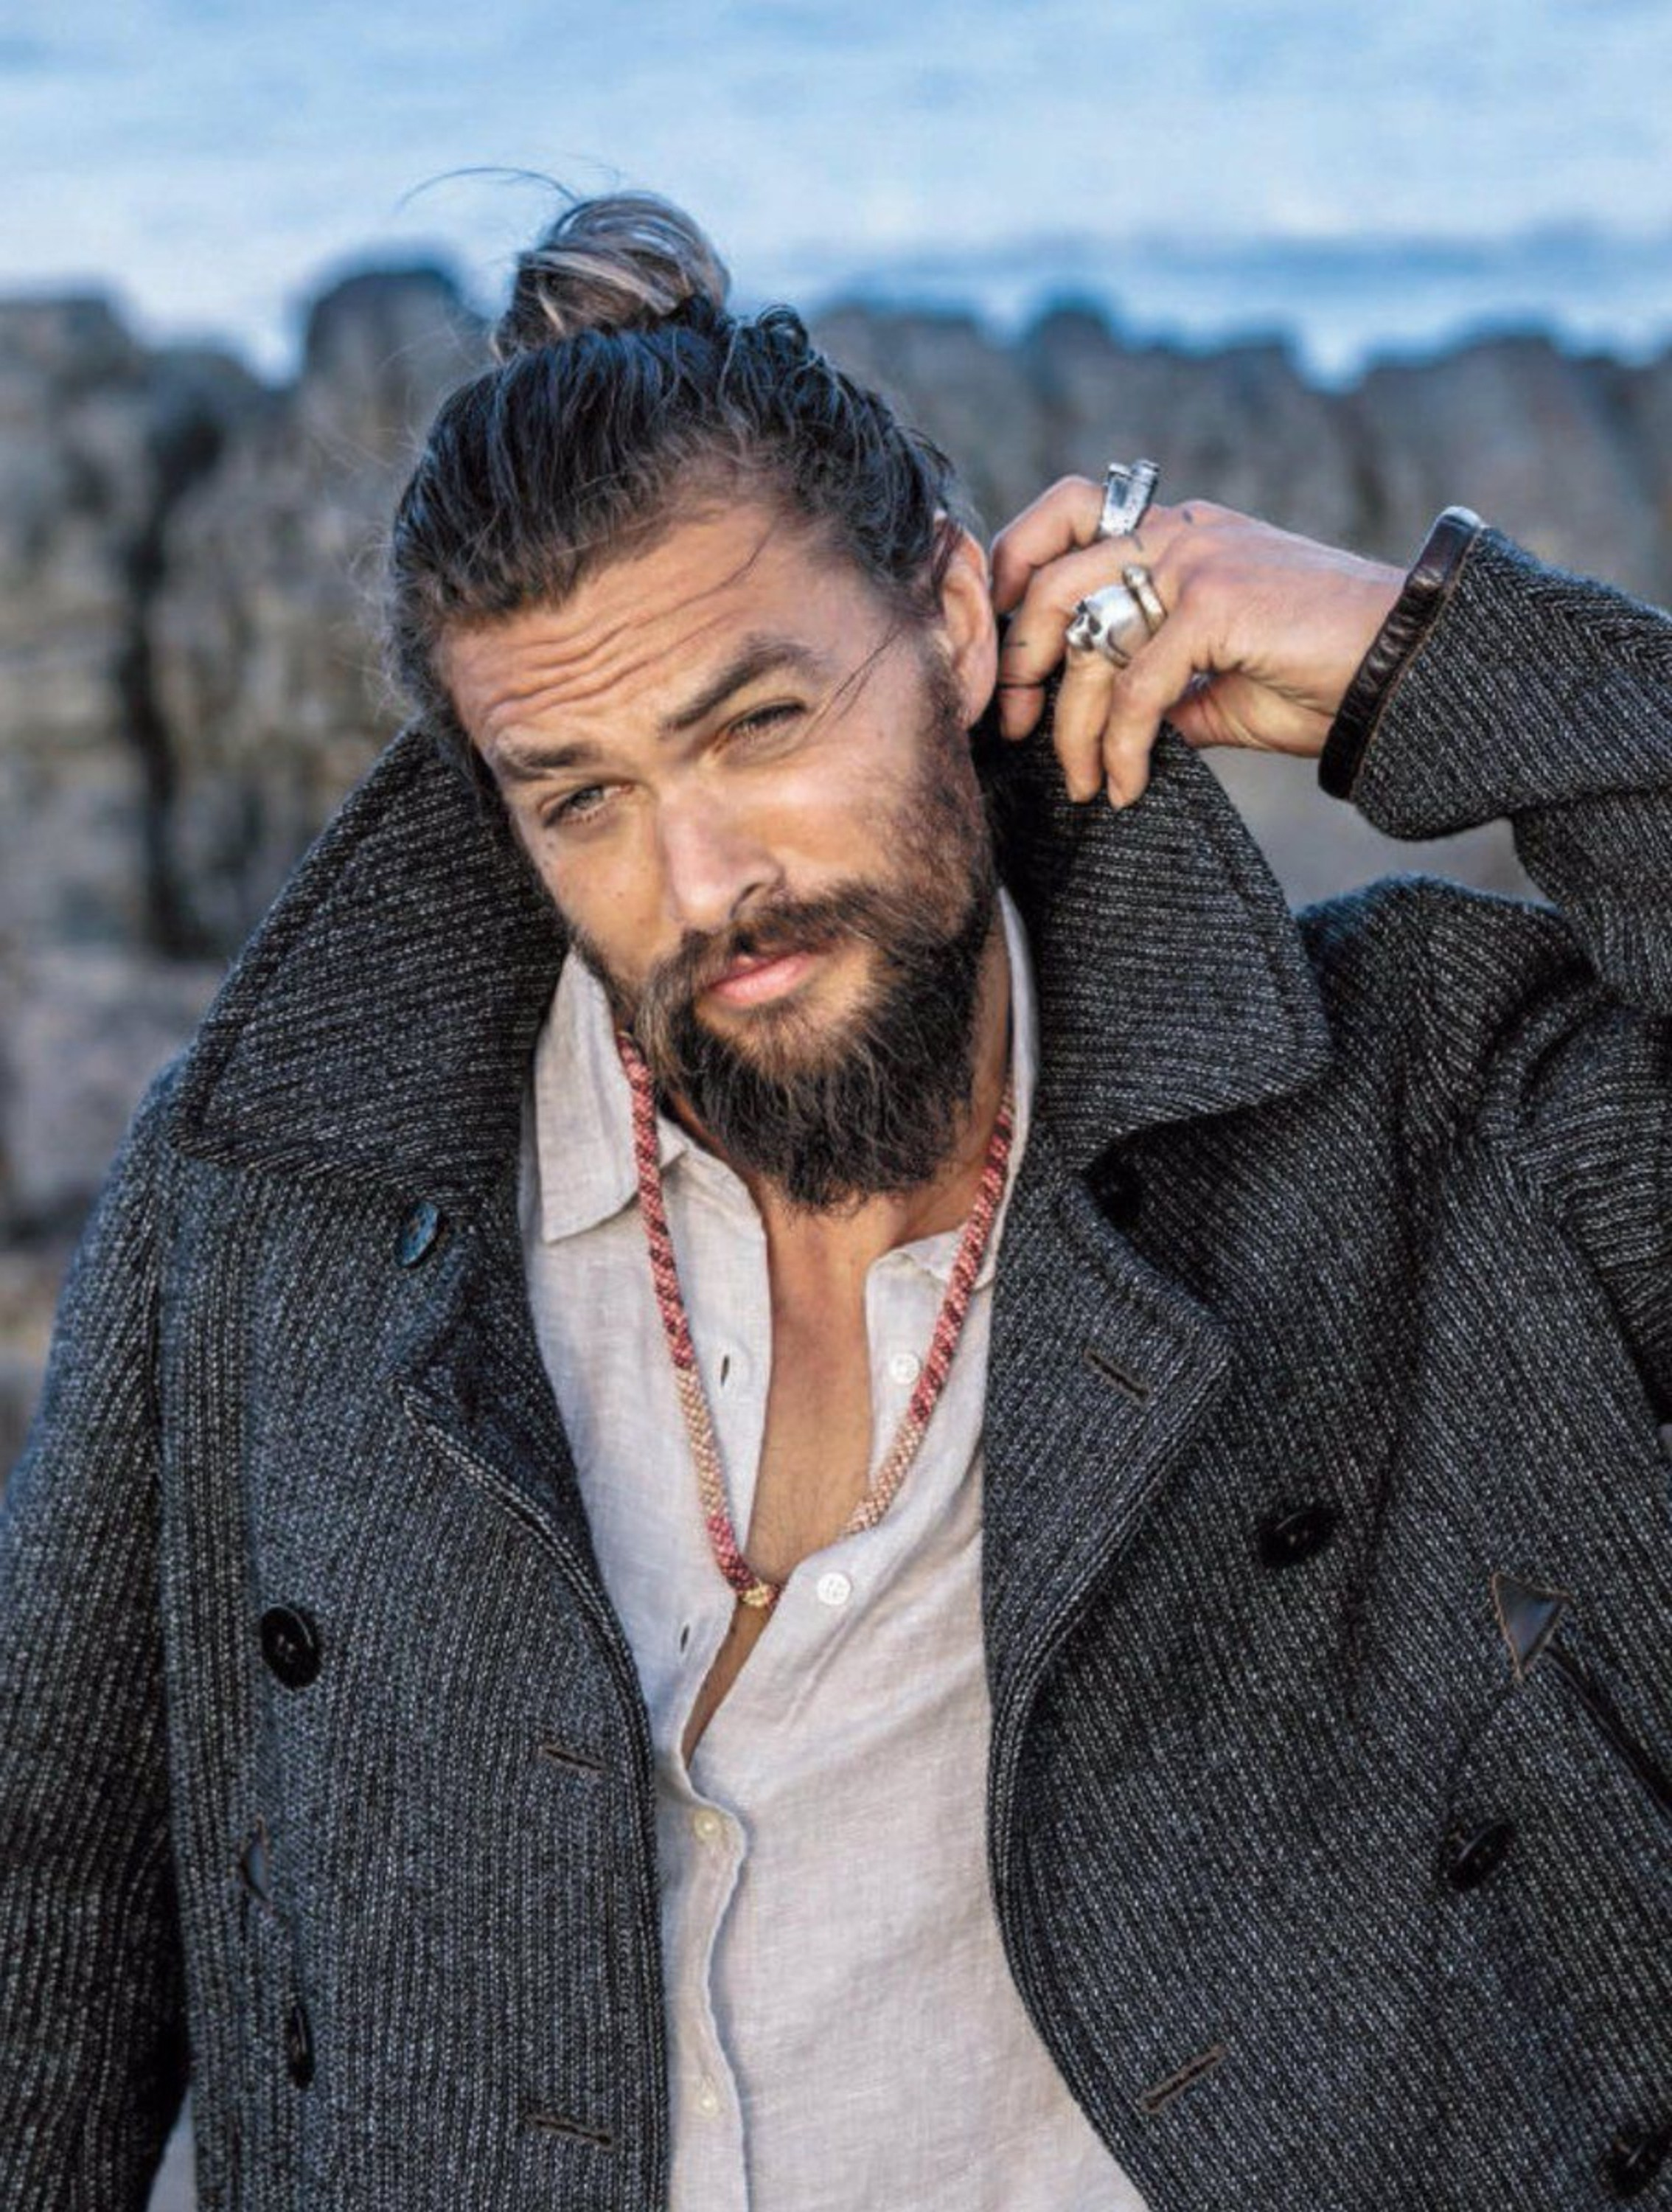 Jason Momoa with a bun hairstyle.